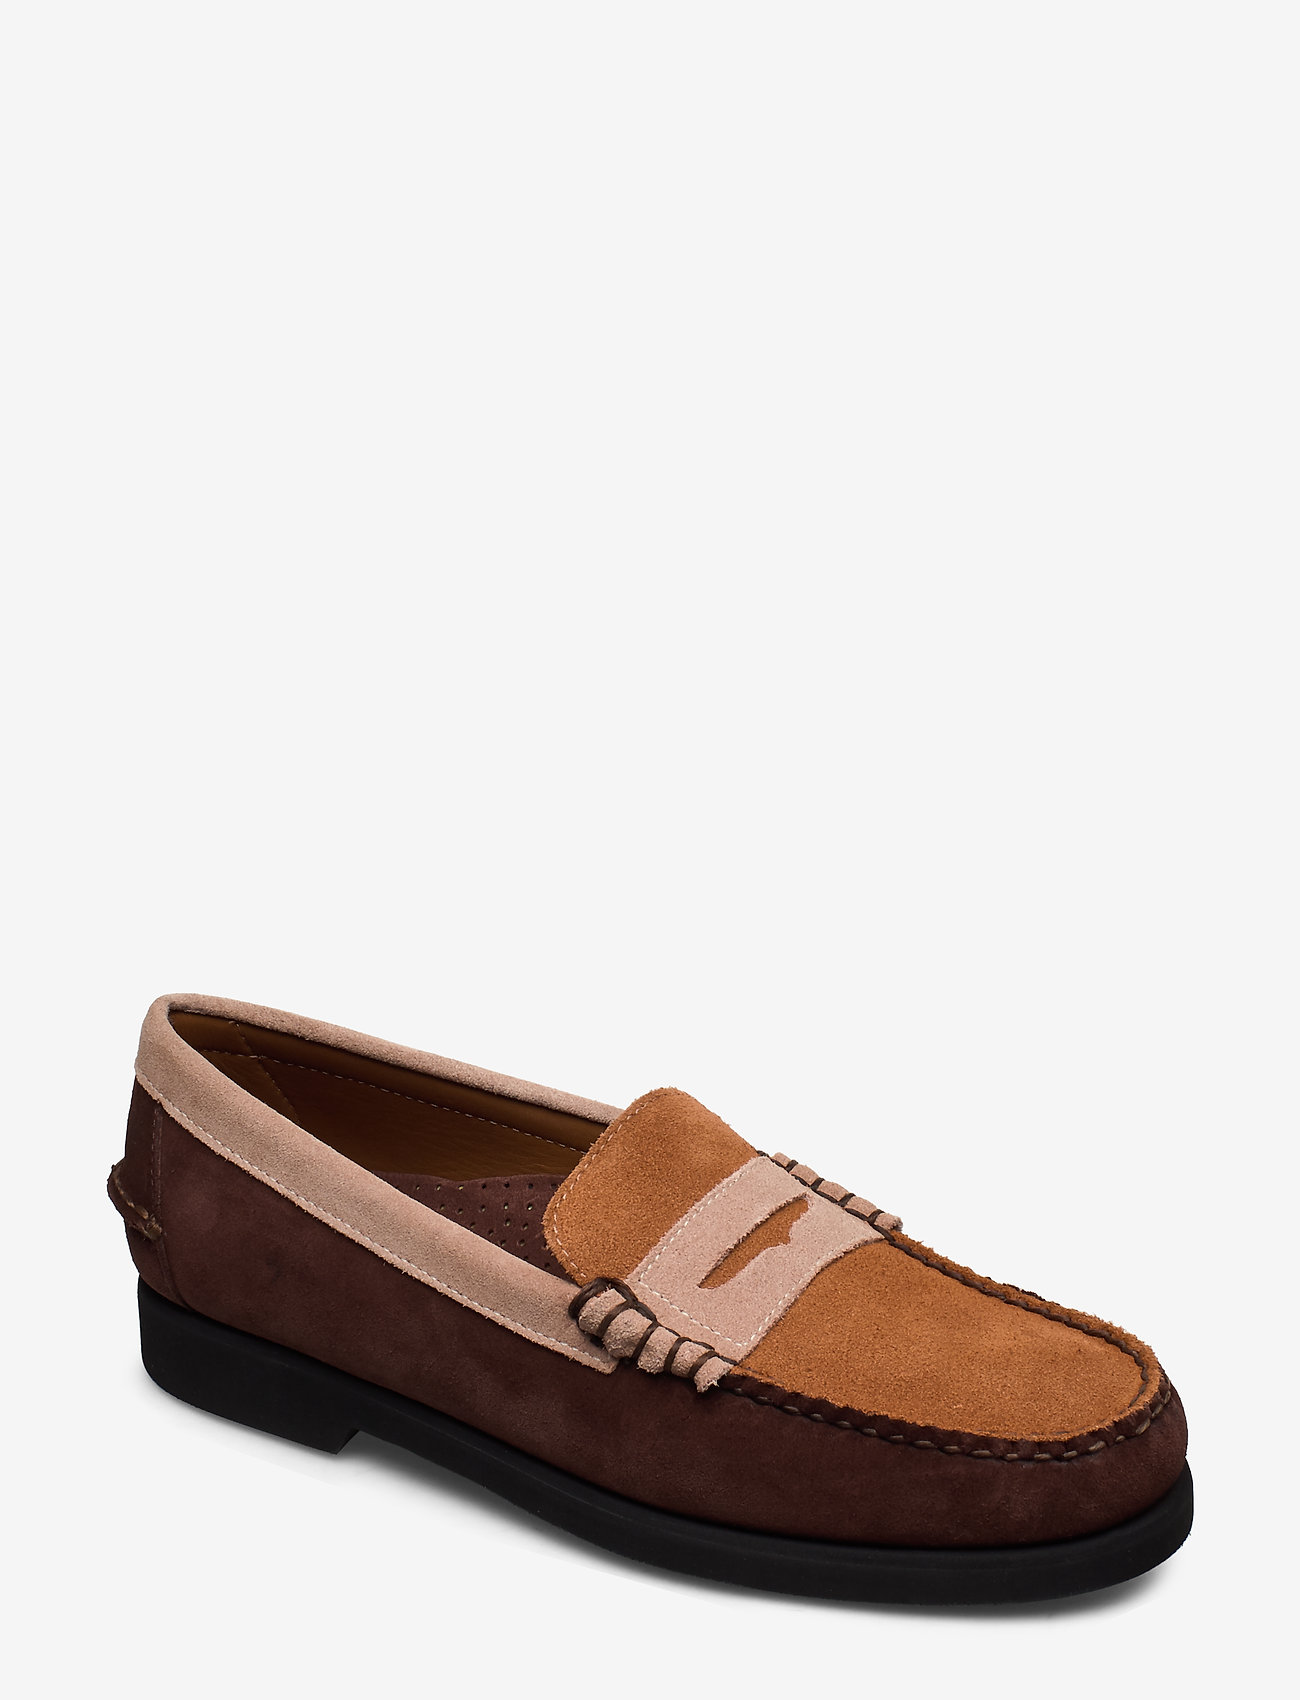 Sebago - Dan Suede Tricolor Polaris - loafers - dk brown/taupe/cogna - 0